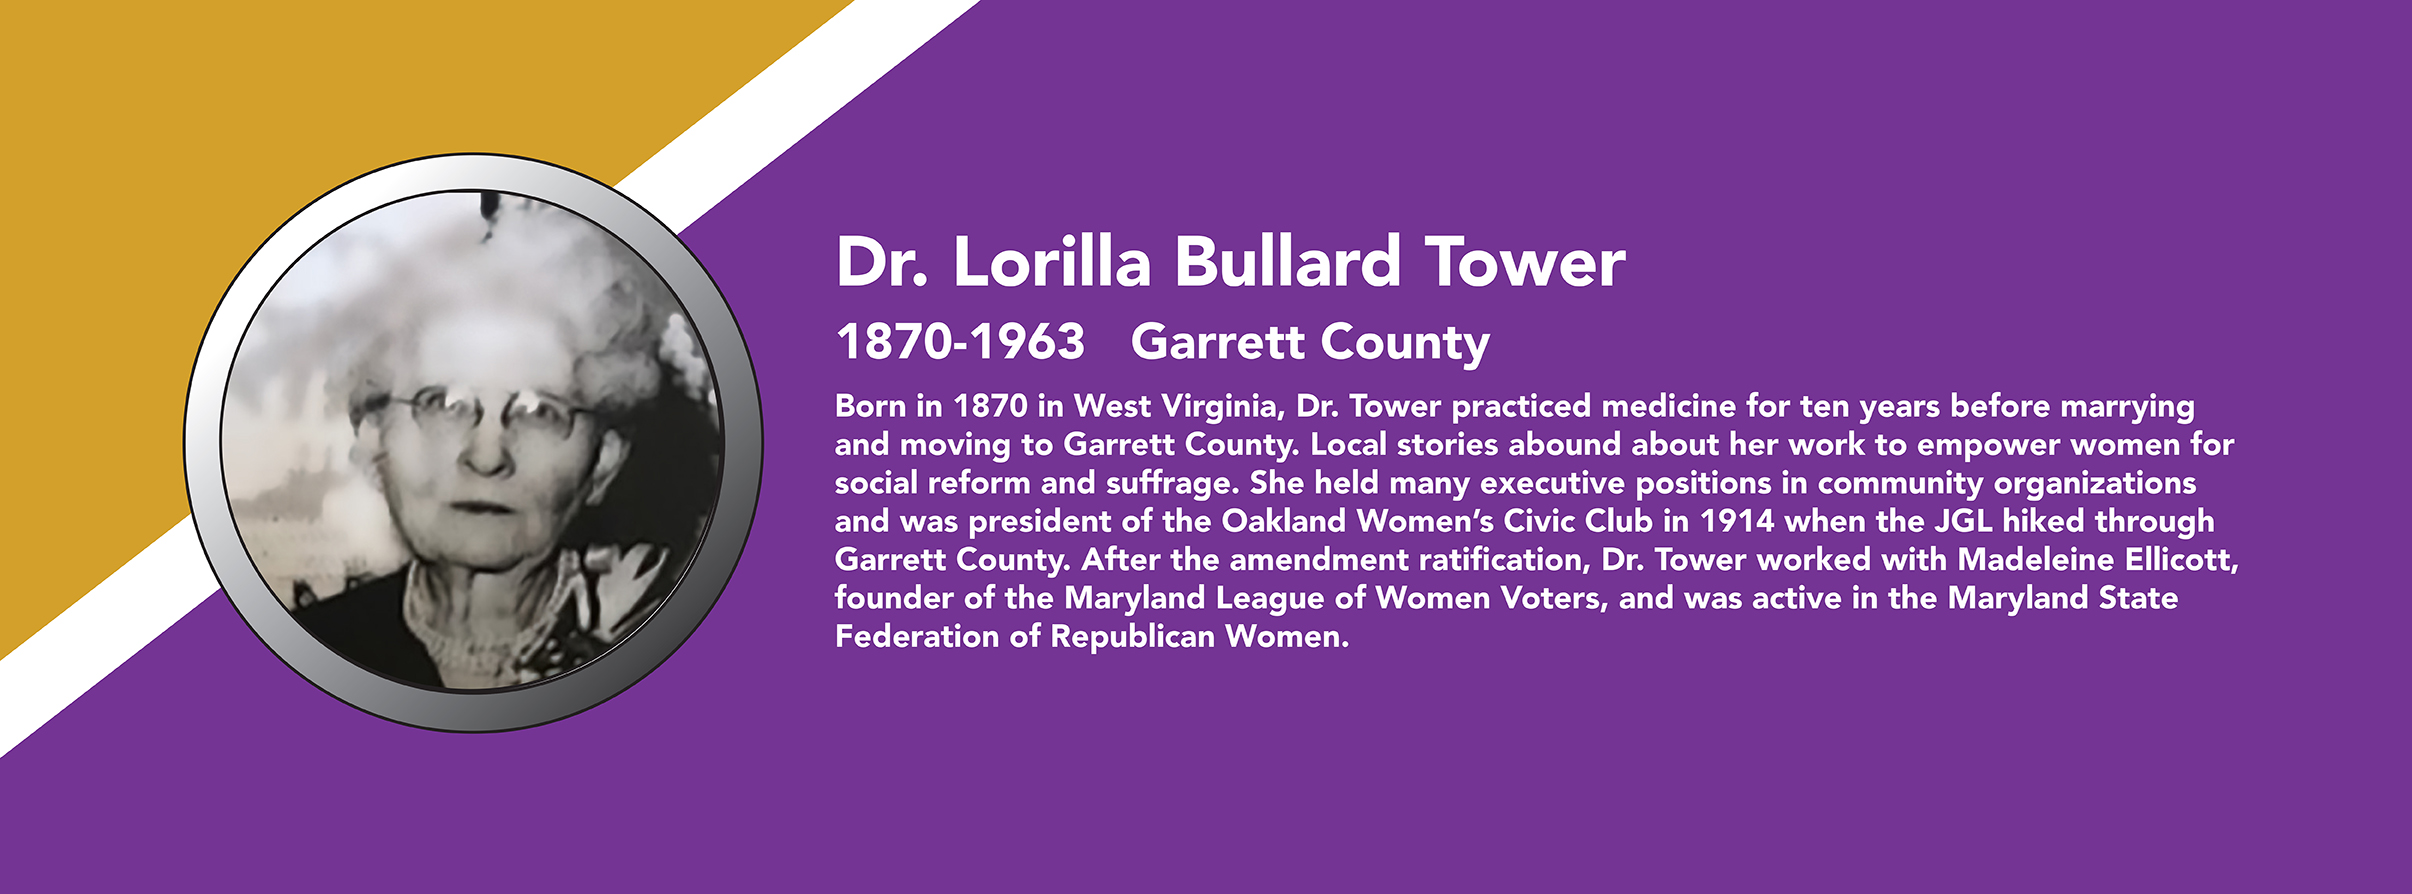 Lorilla Bullard Tower